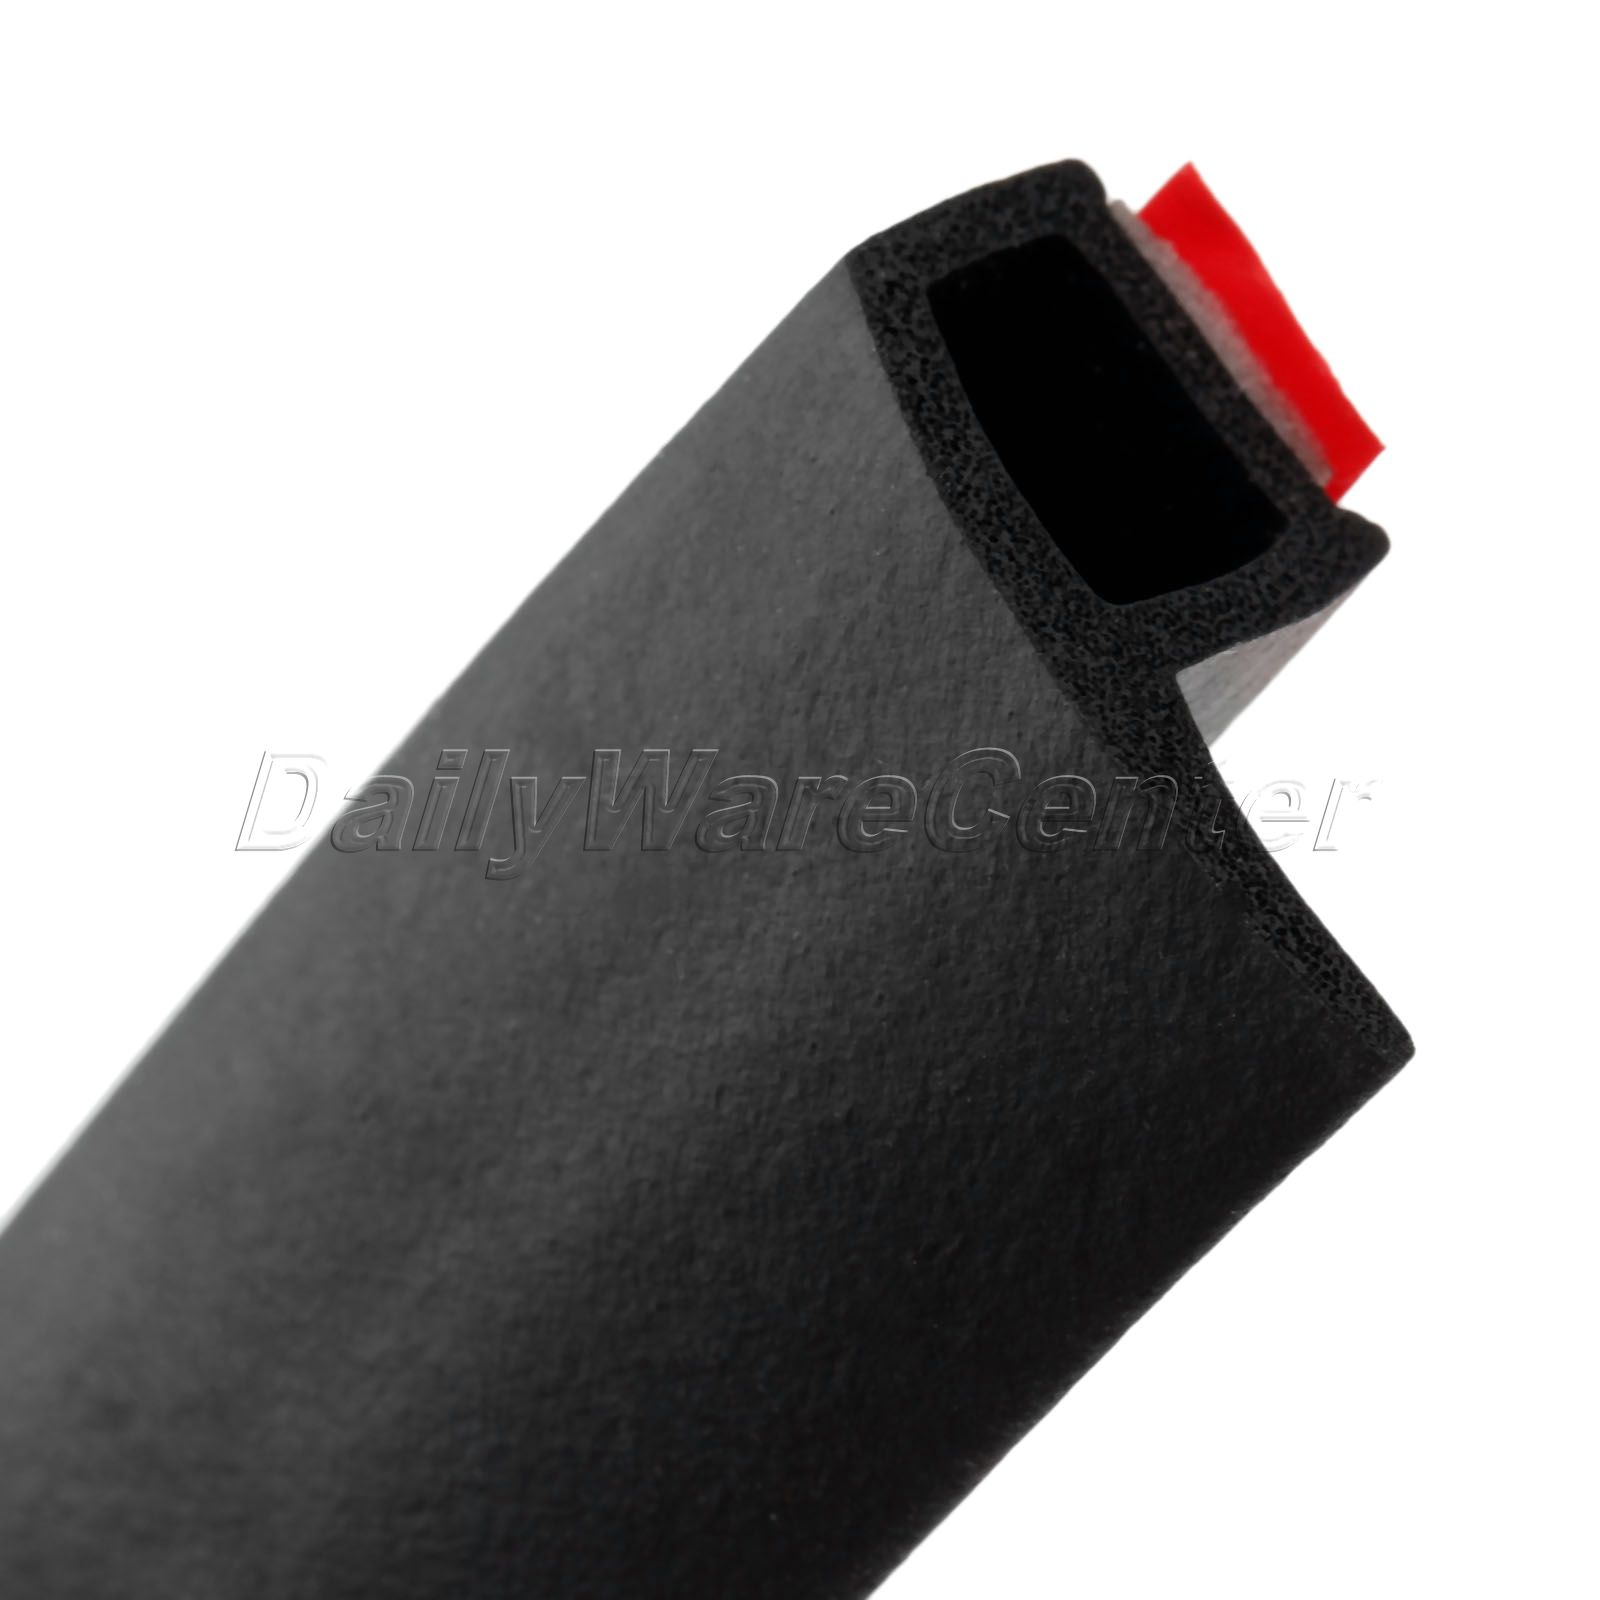 4 Meter P Type Car Door Seal Strips Rubber Soundproof Noise Insulation Sealing Strip Weatherstrip Edge Trim Waterproof Adhesive in Fillers Adhesives Sealants from Automobiles Motorcycles